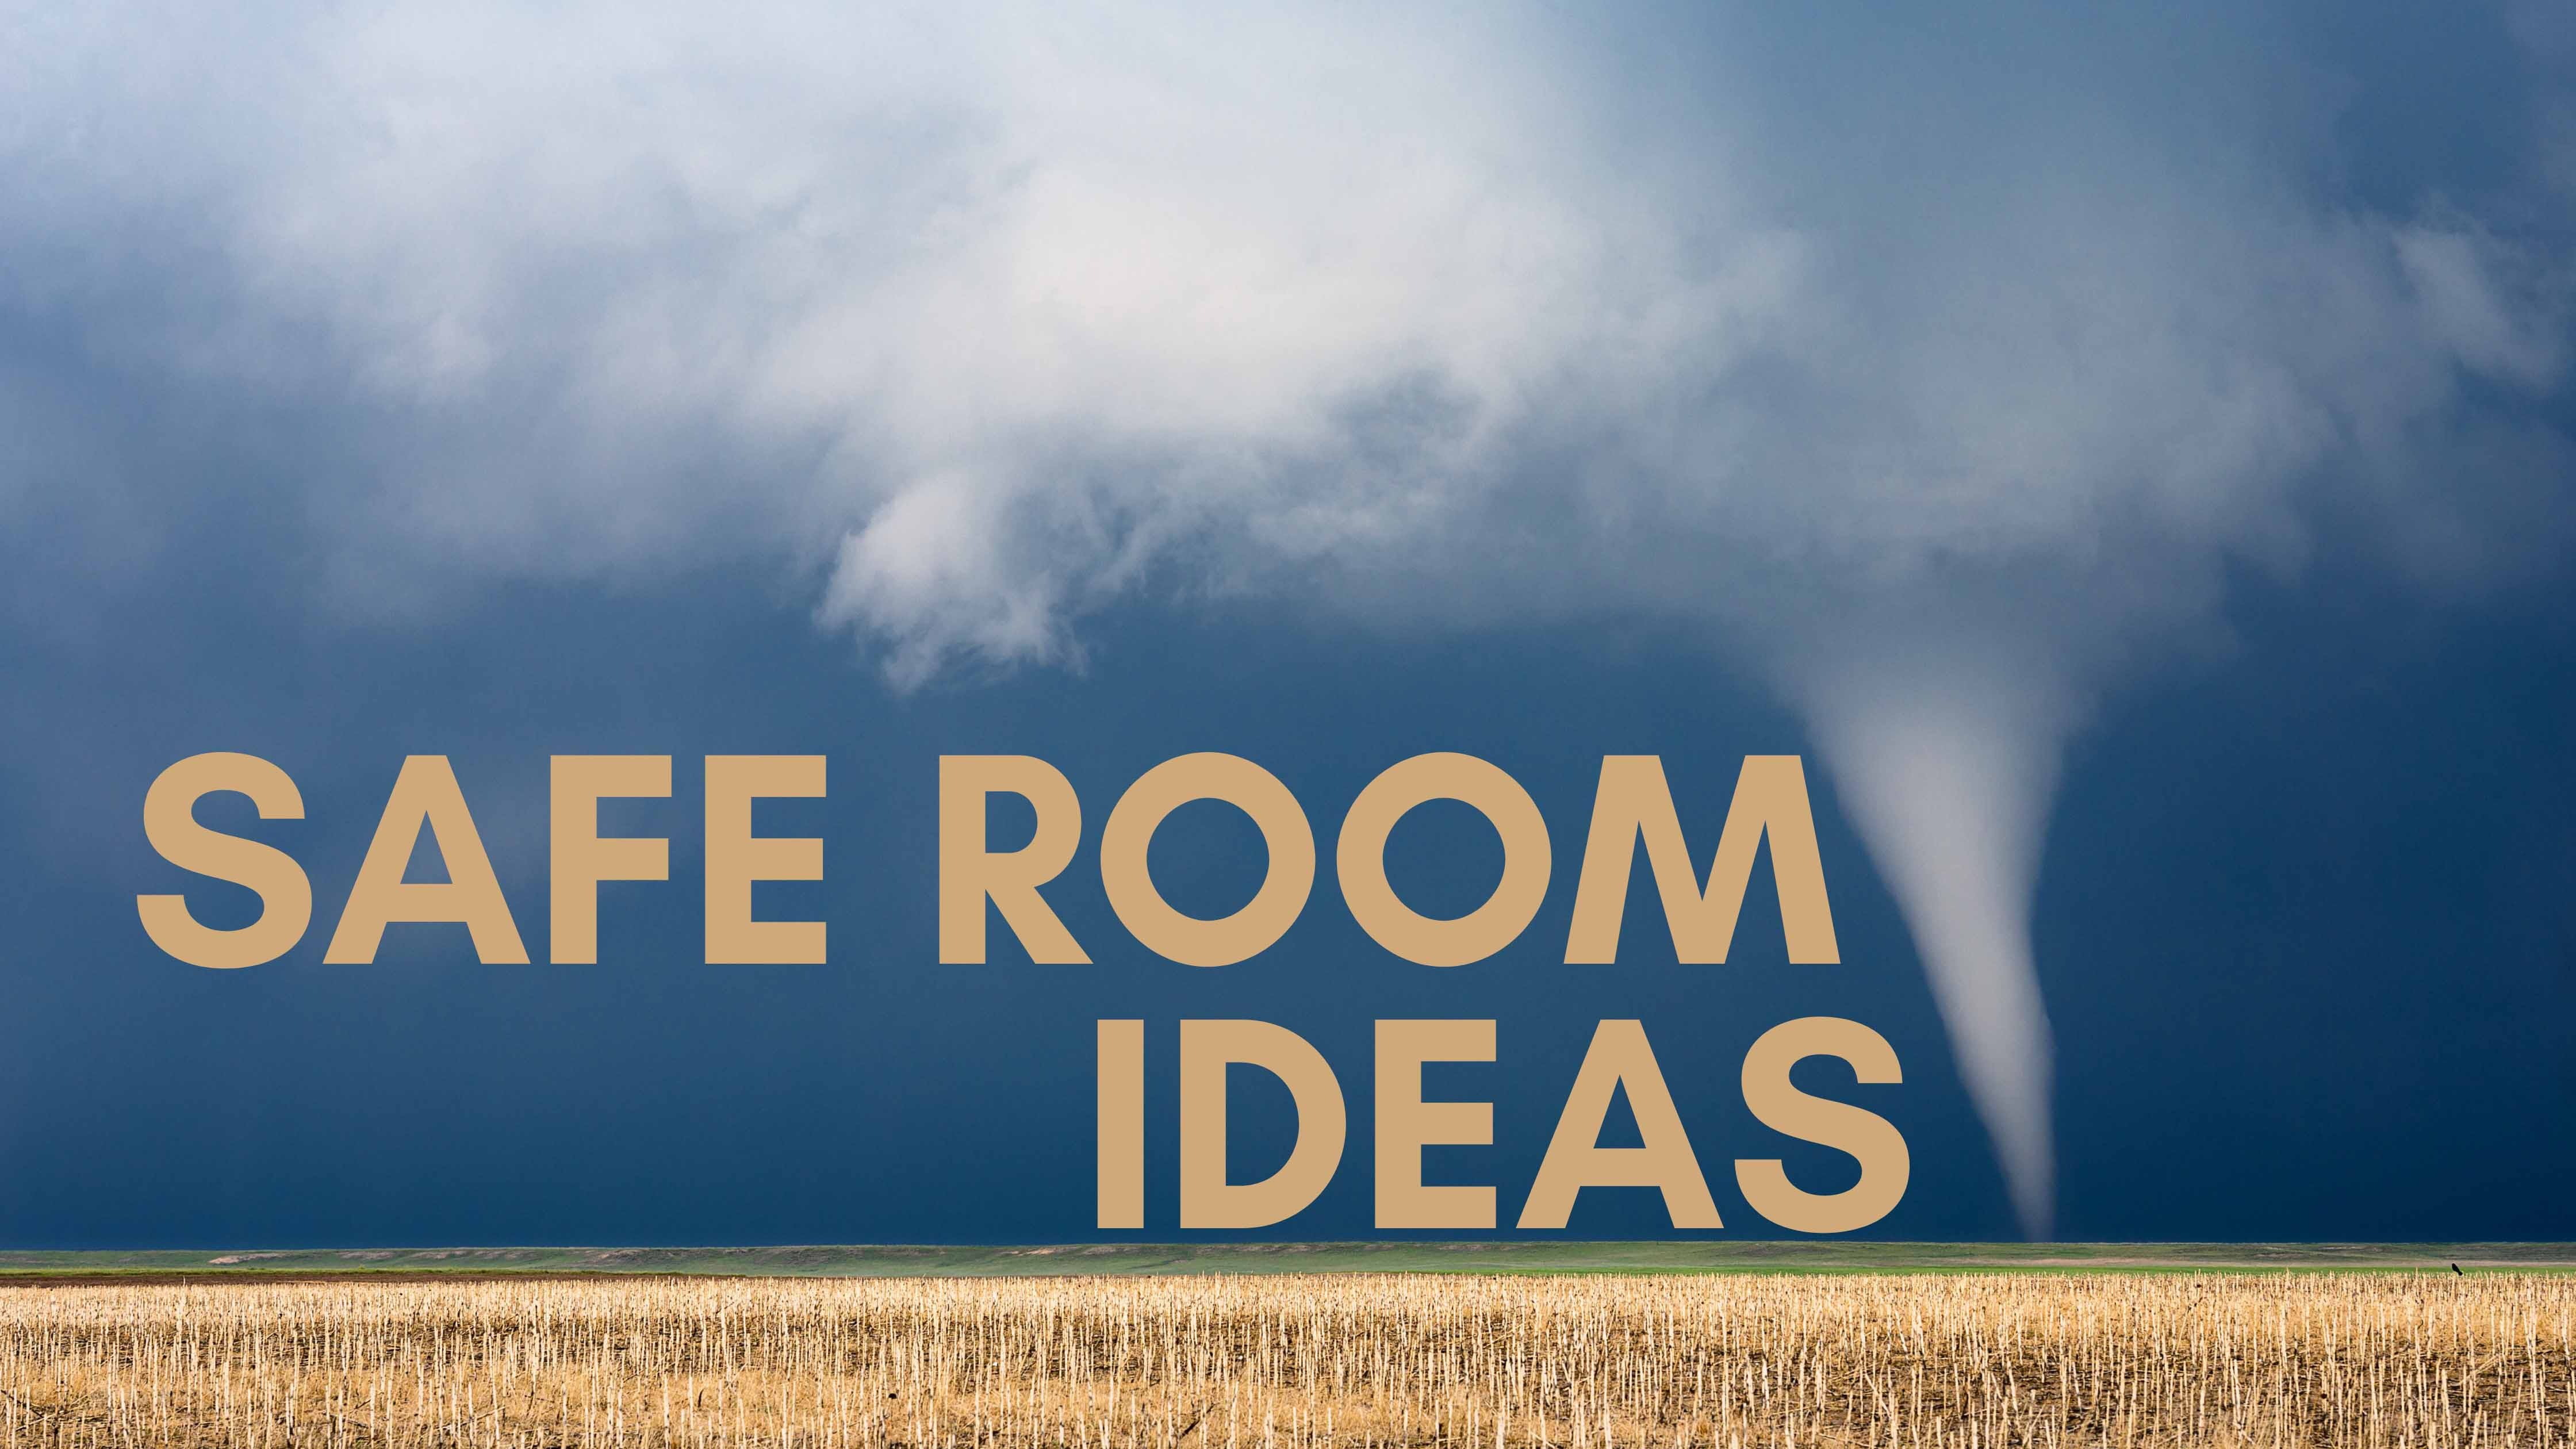 Safe Room Ideas for a More Secure Home